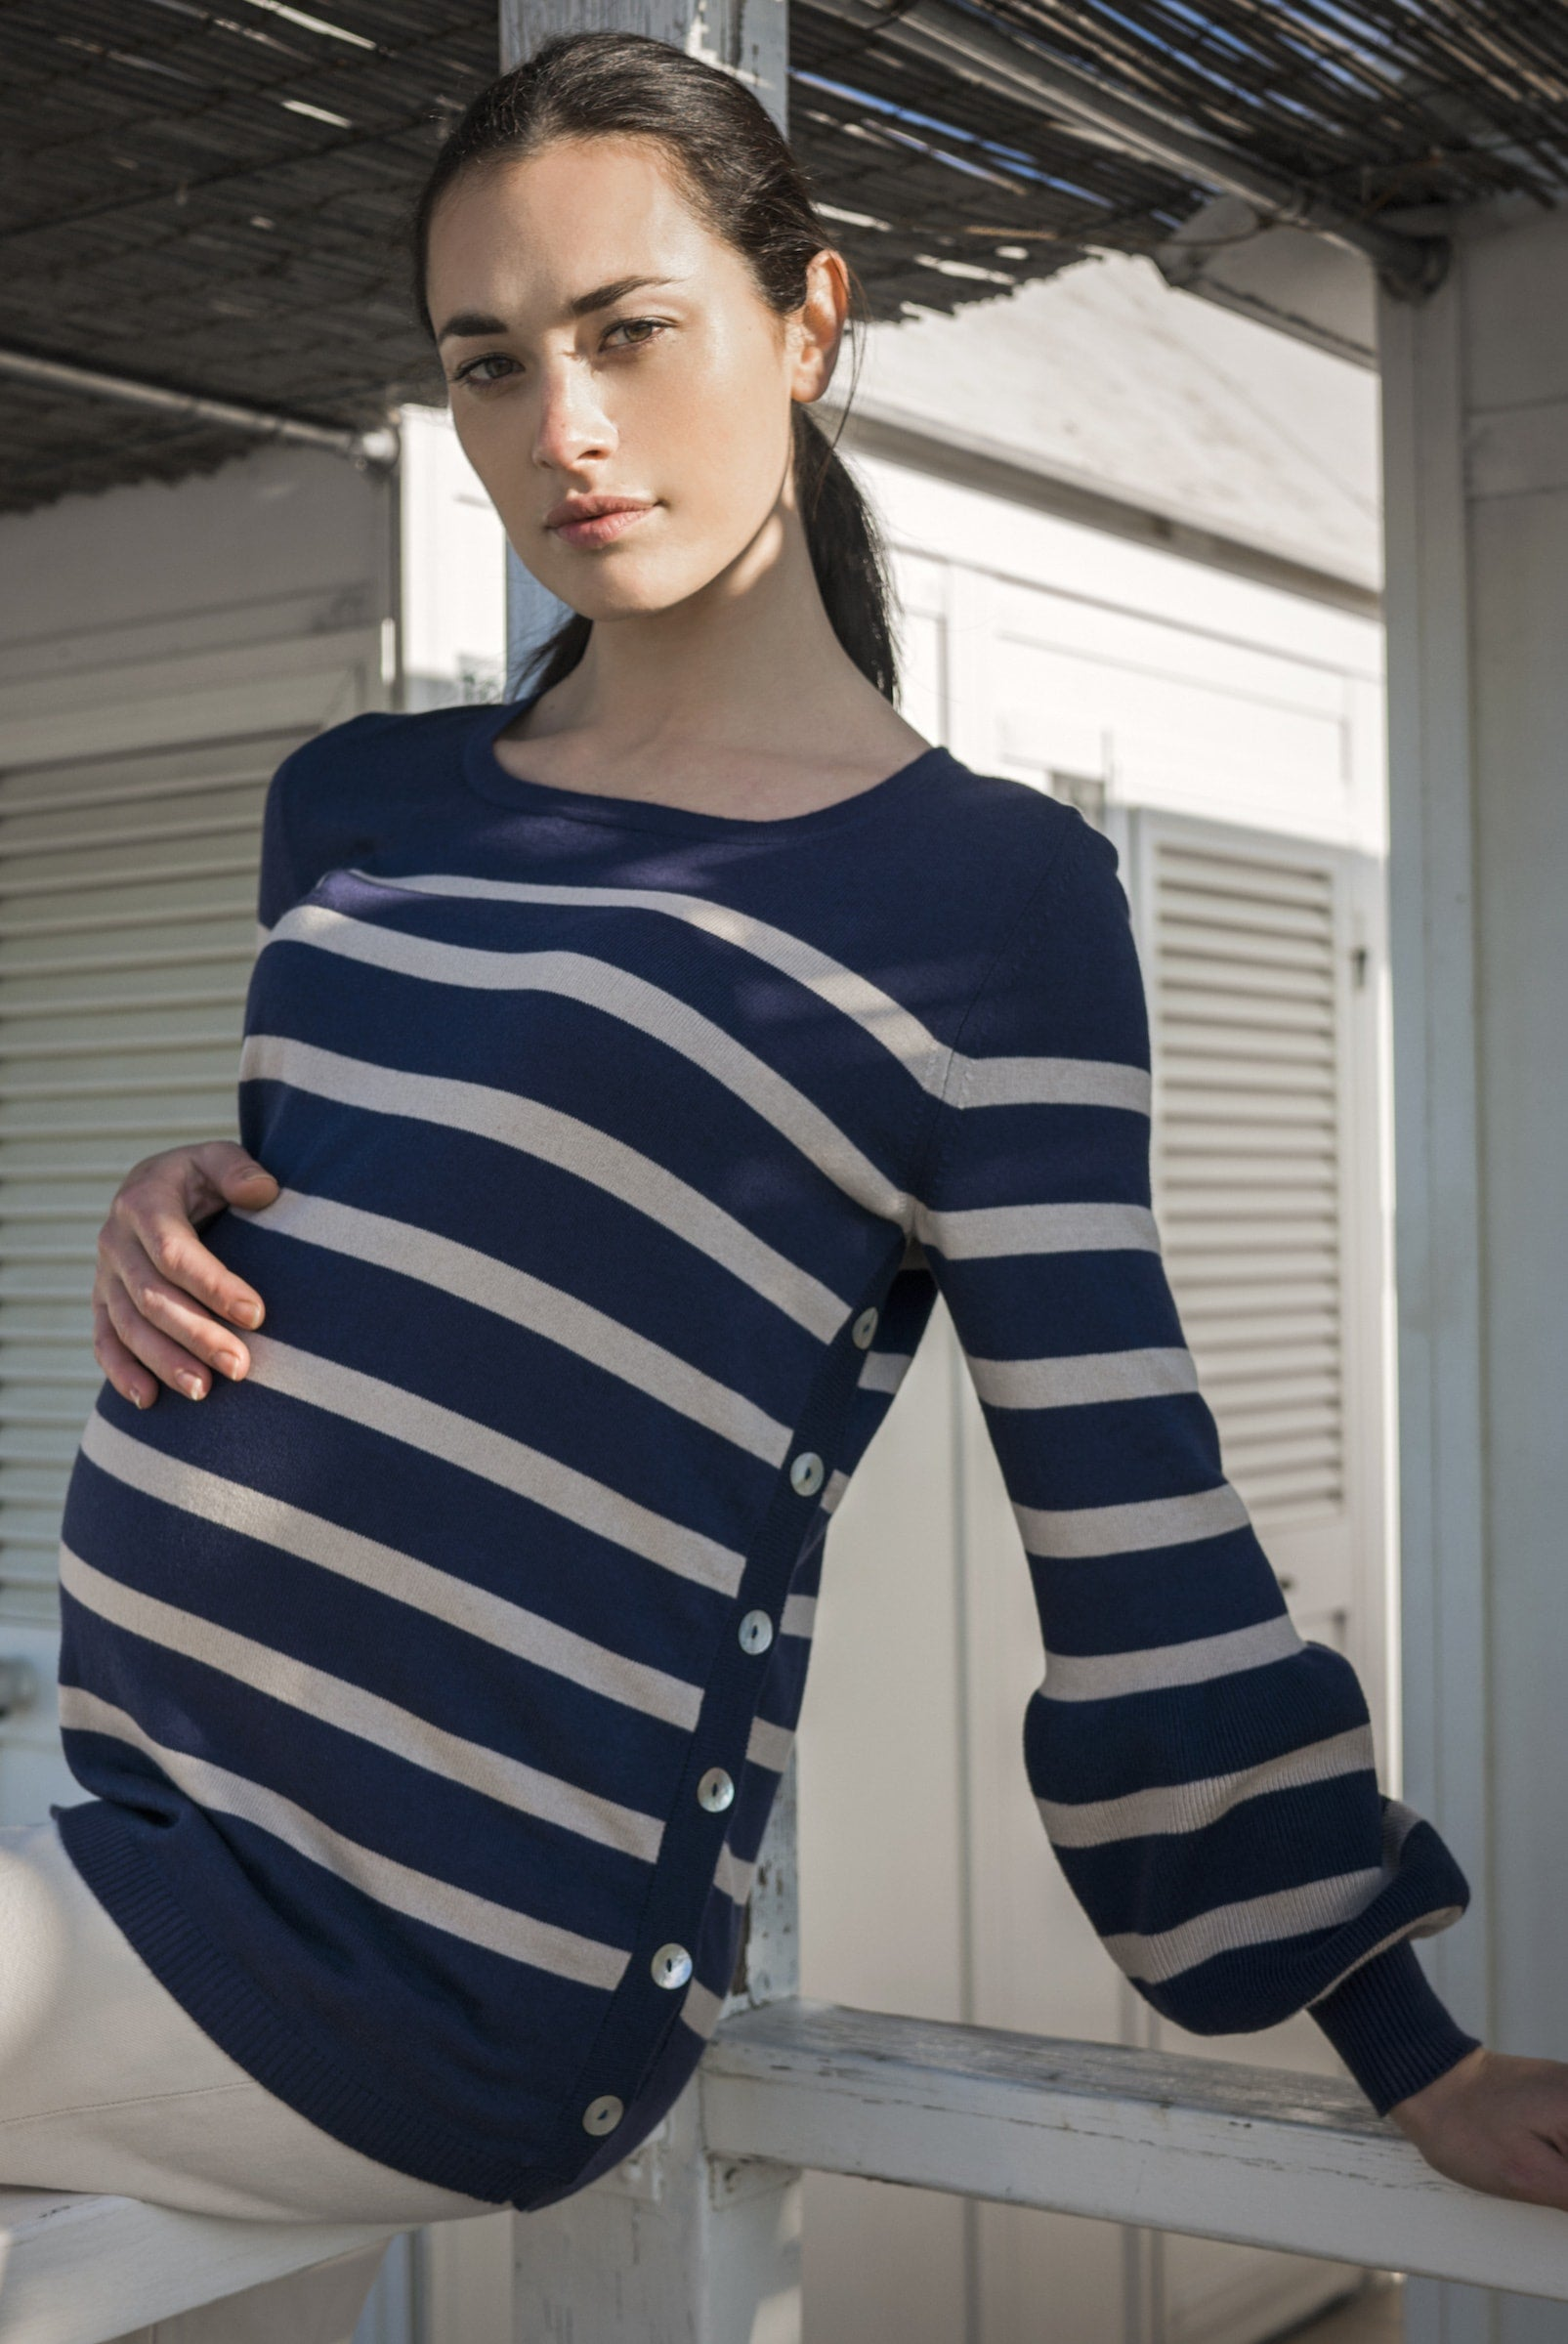 Anita Striped Maternity Sweater - Navy